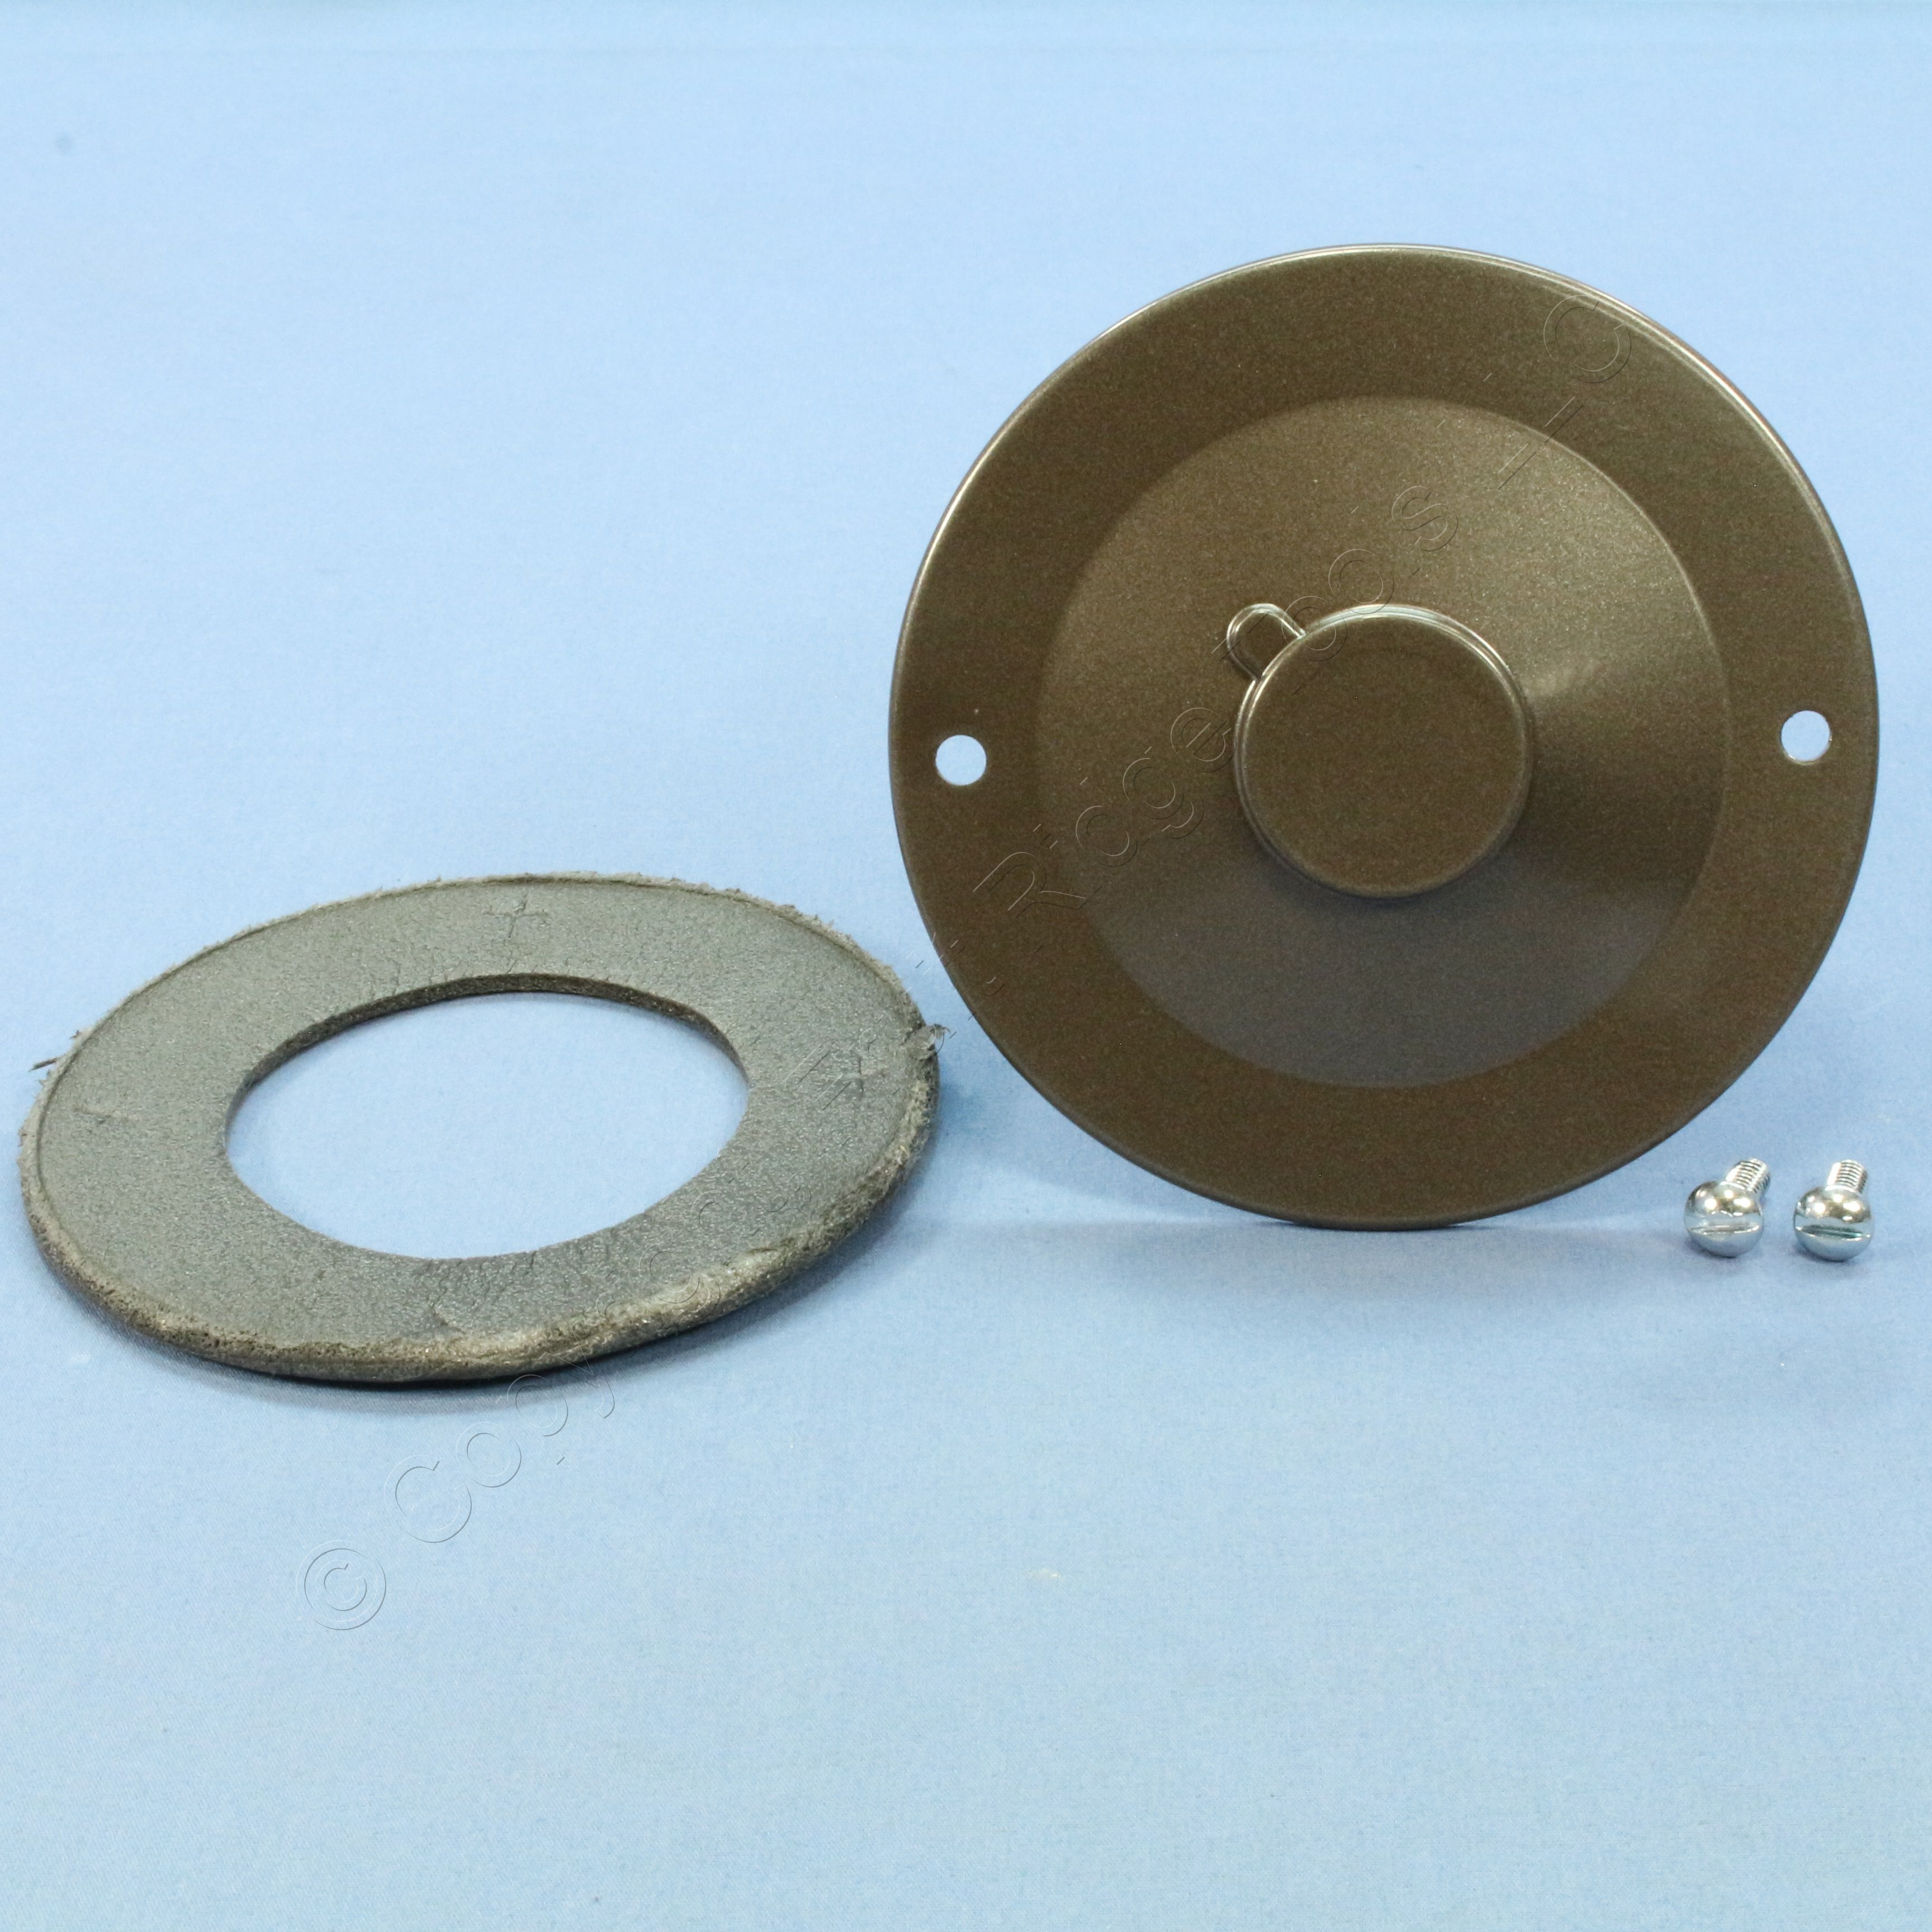 """1 Pass and Seymour weatherproof 4/"""" round outdoor cluster cover bronze WPRB1-BR"""